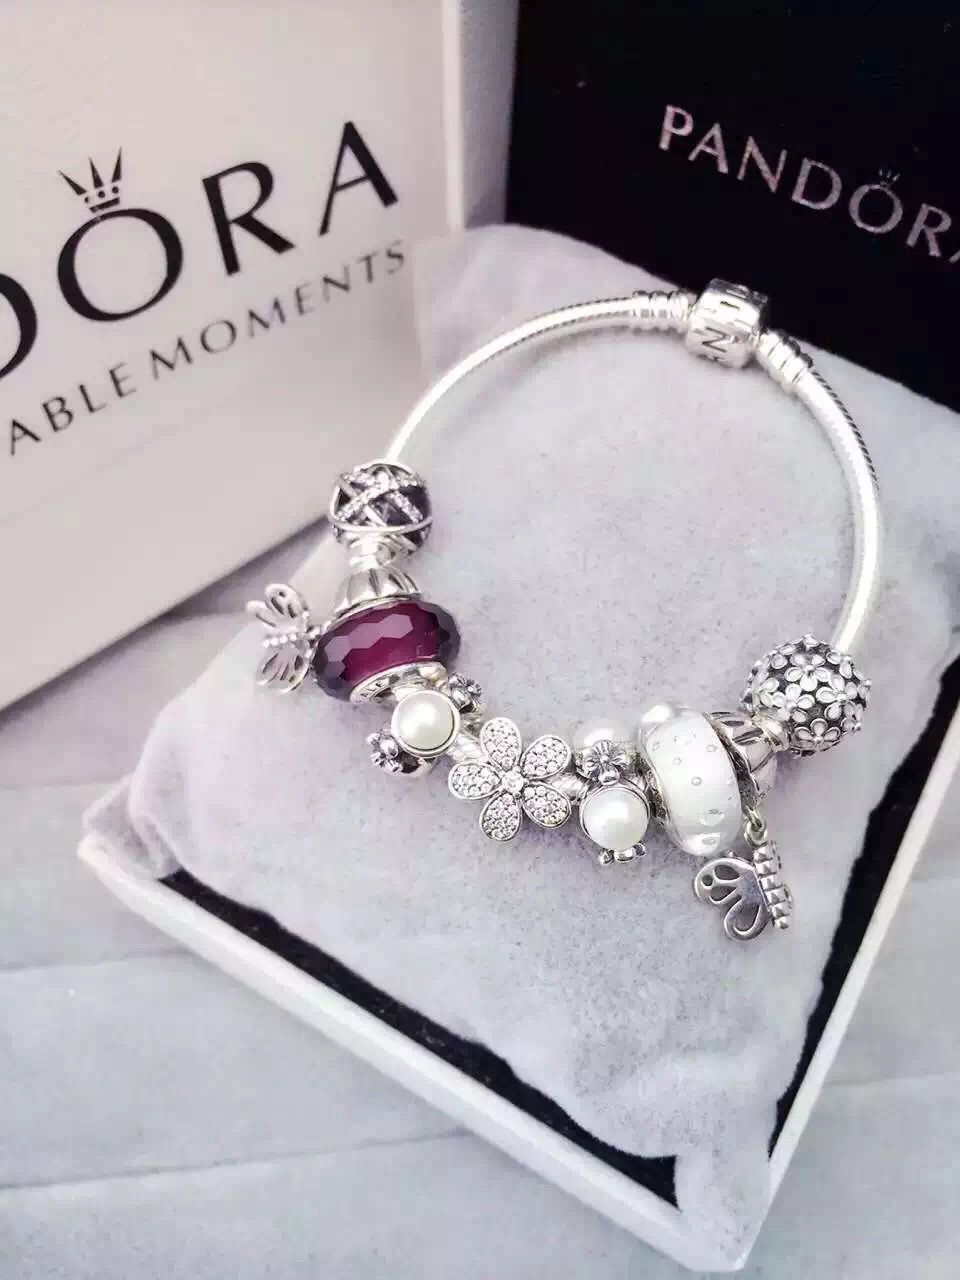 50 OFF 219 Pandora Charm Bracelet White Purple Hot Sale SKU